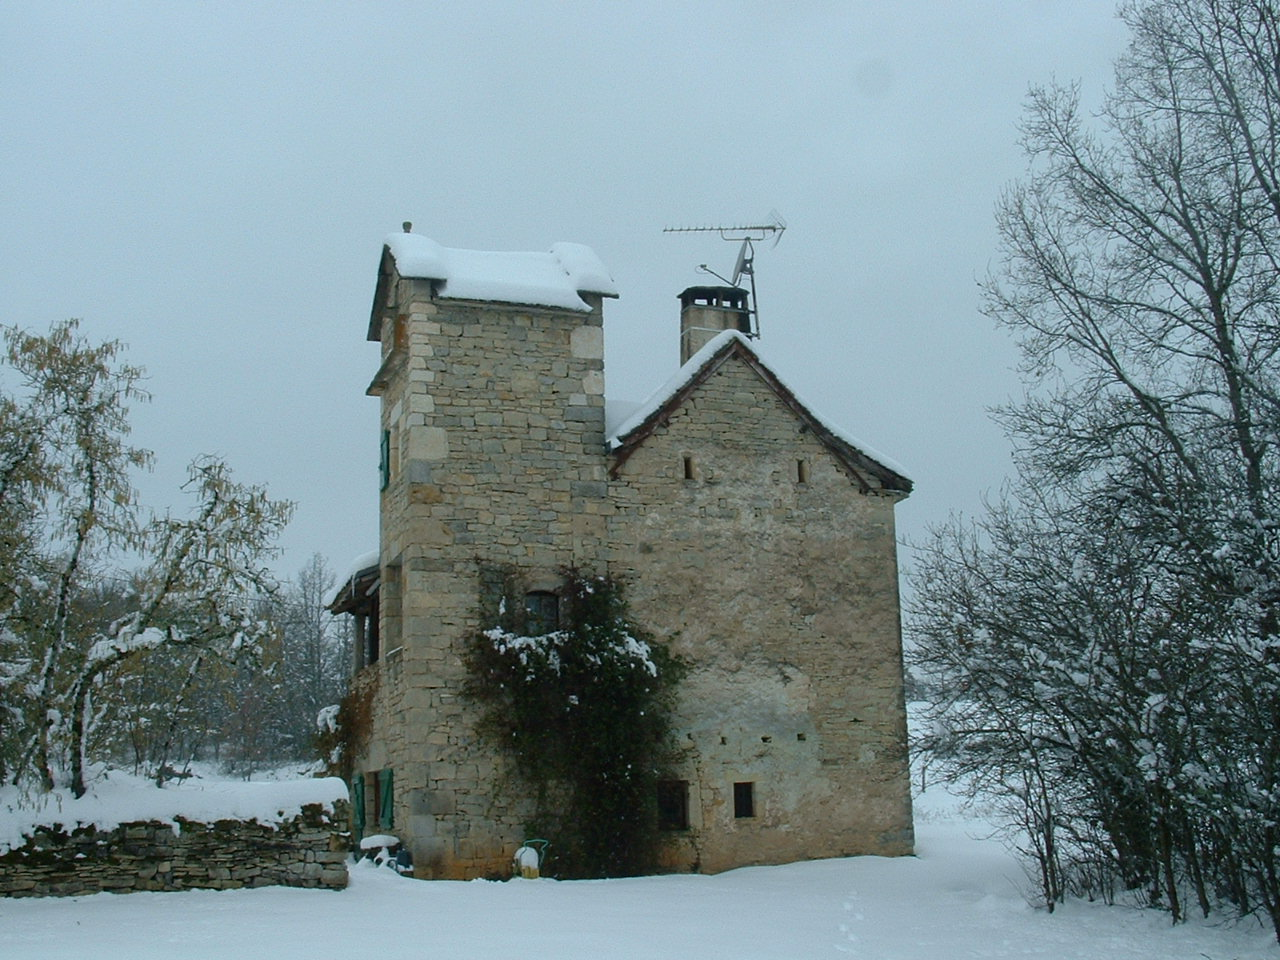 Our house in the snow - not like that today